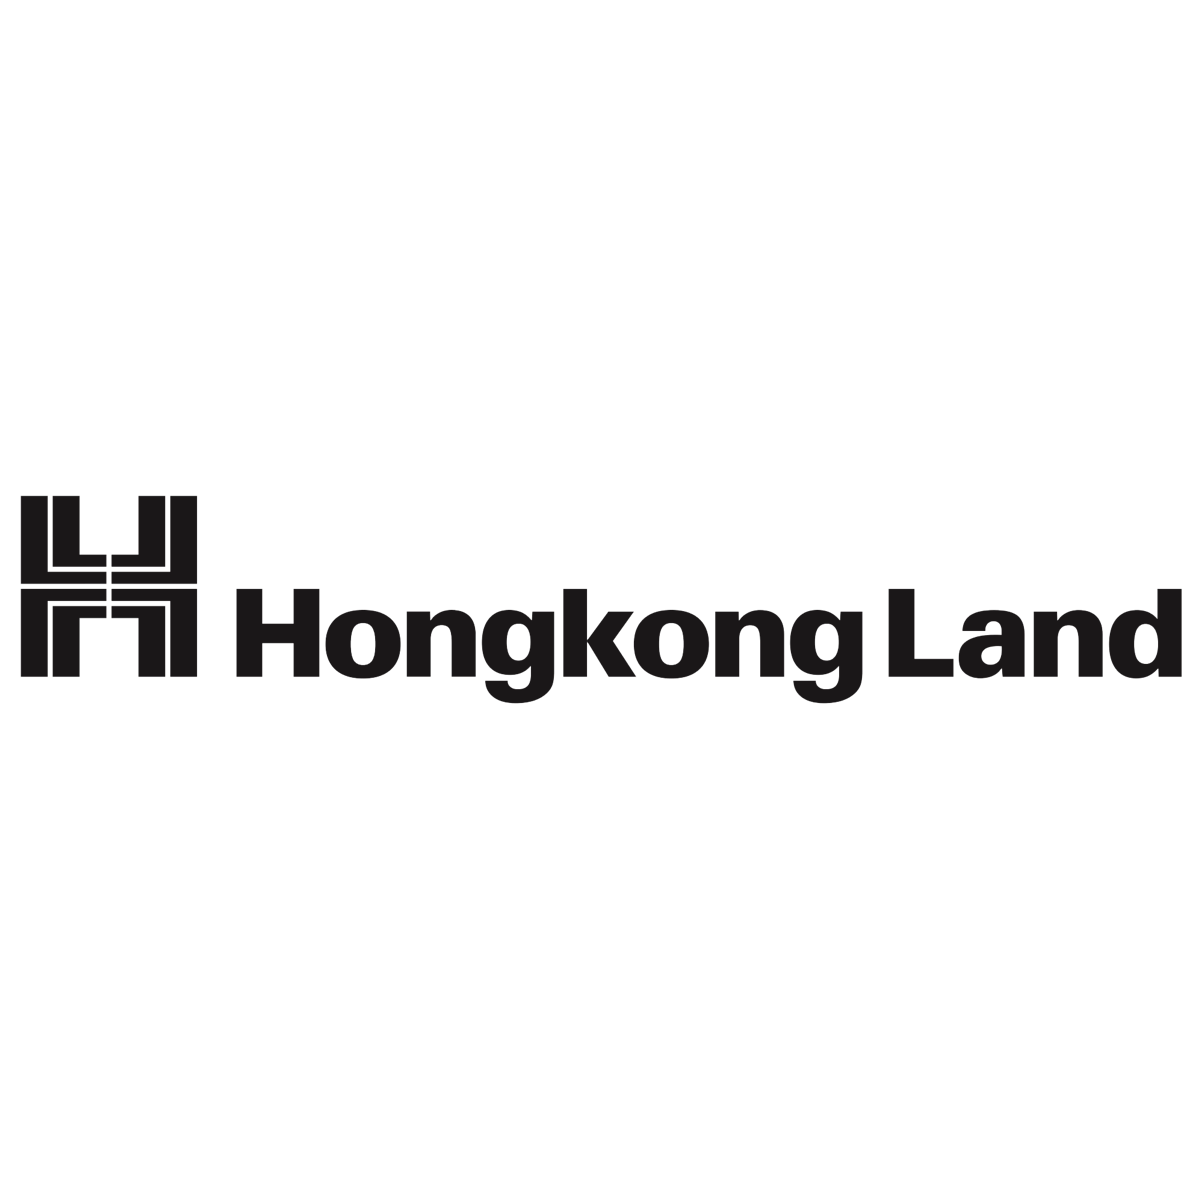 Hongkong Land Holdings Ltd - CGS-CIMB Research 2018-07-26: Defensive Play In A Volatile Market